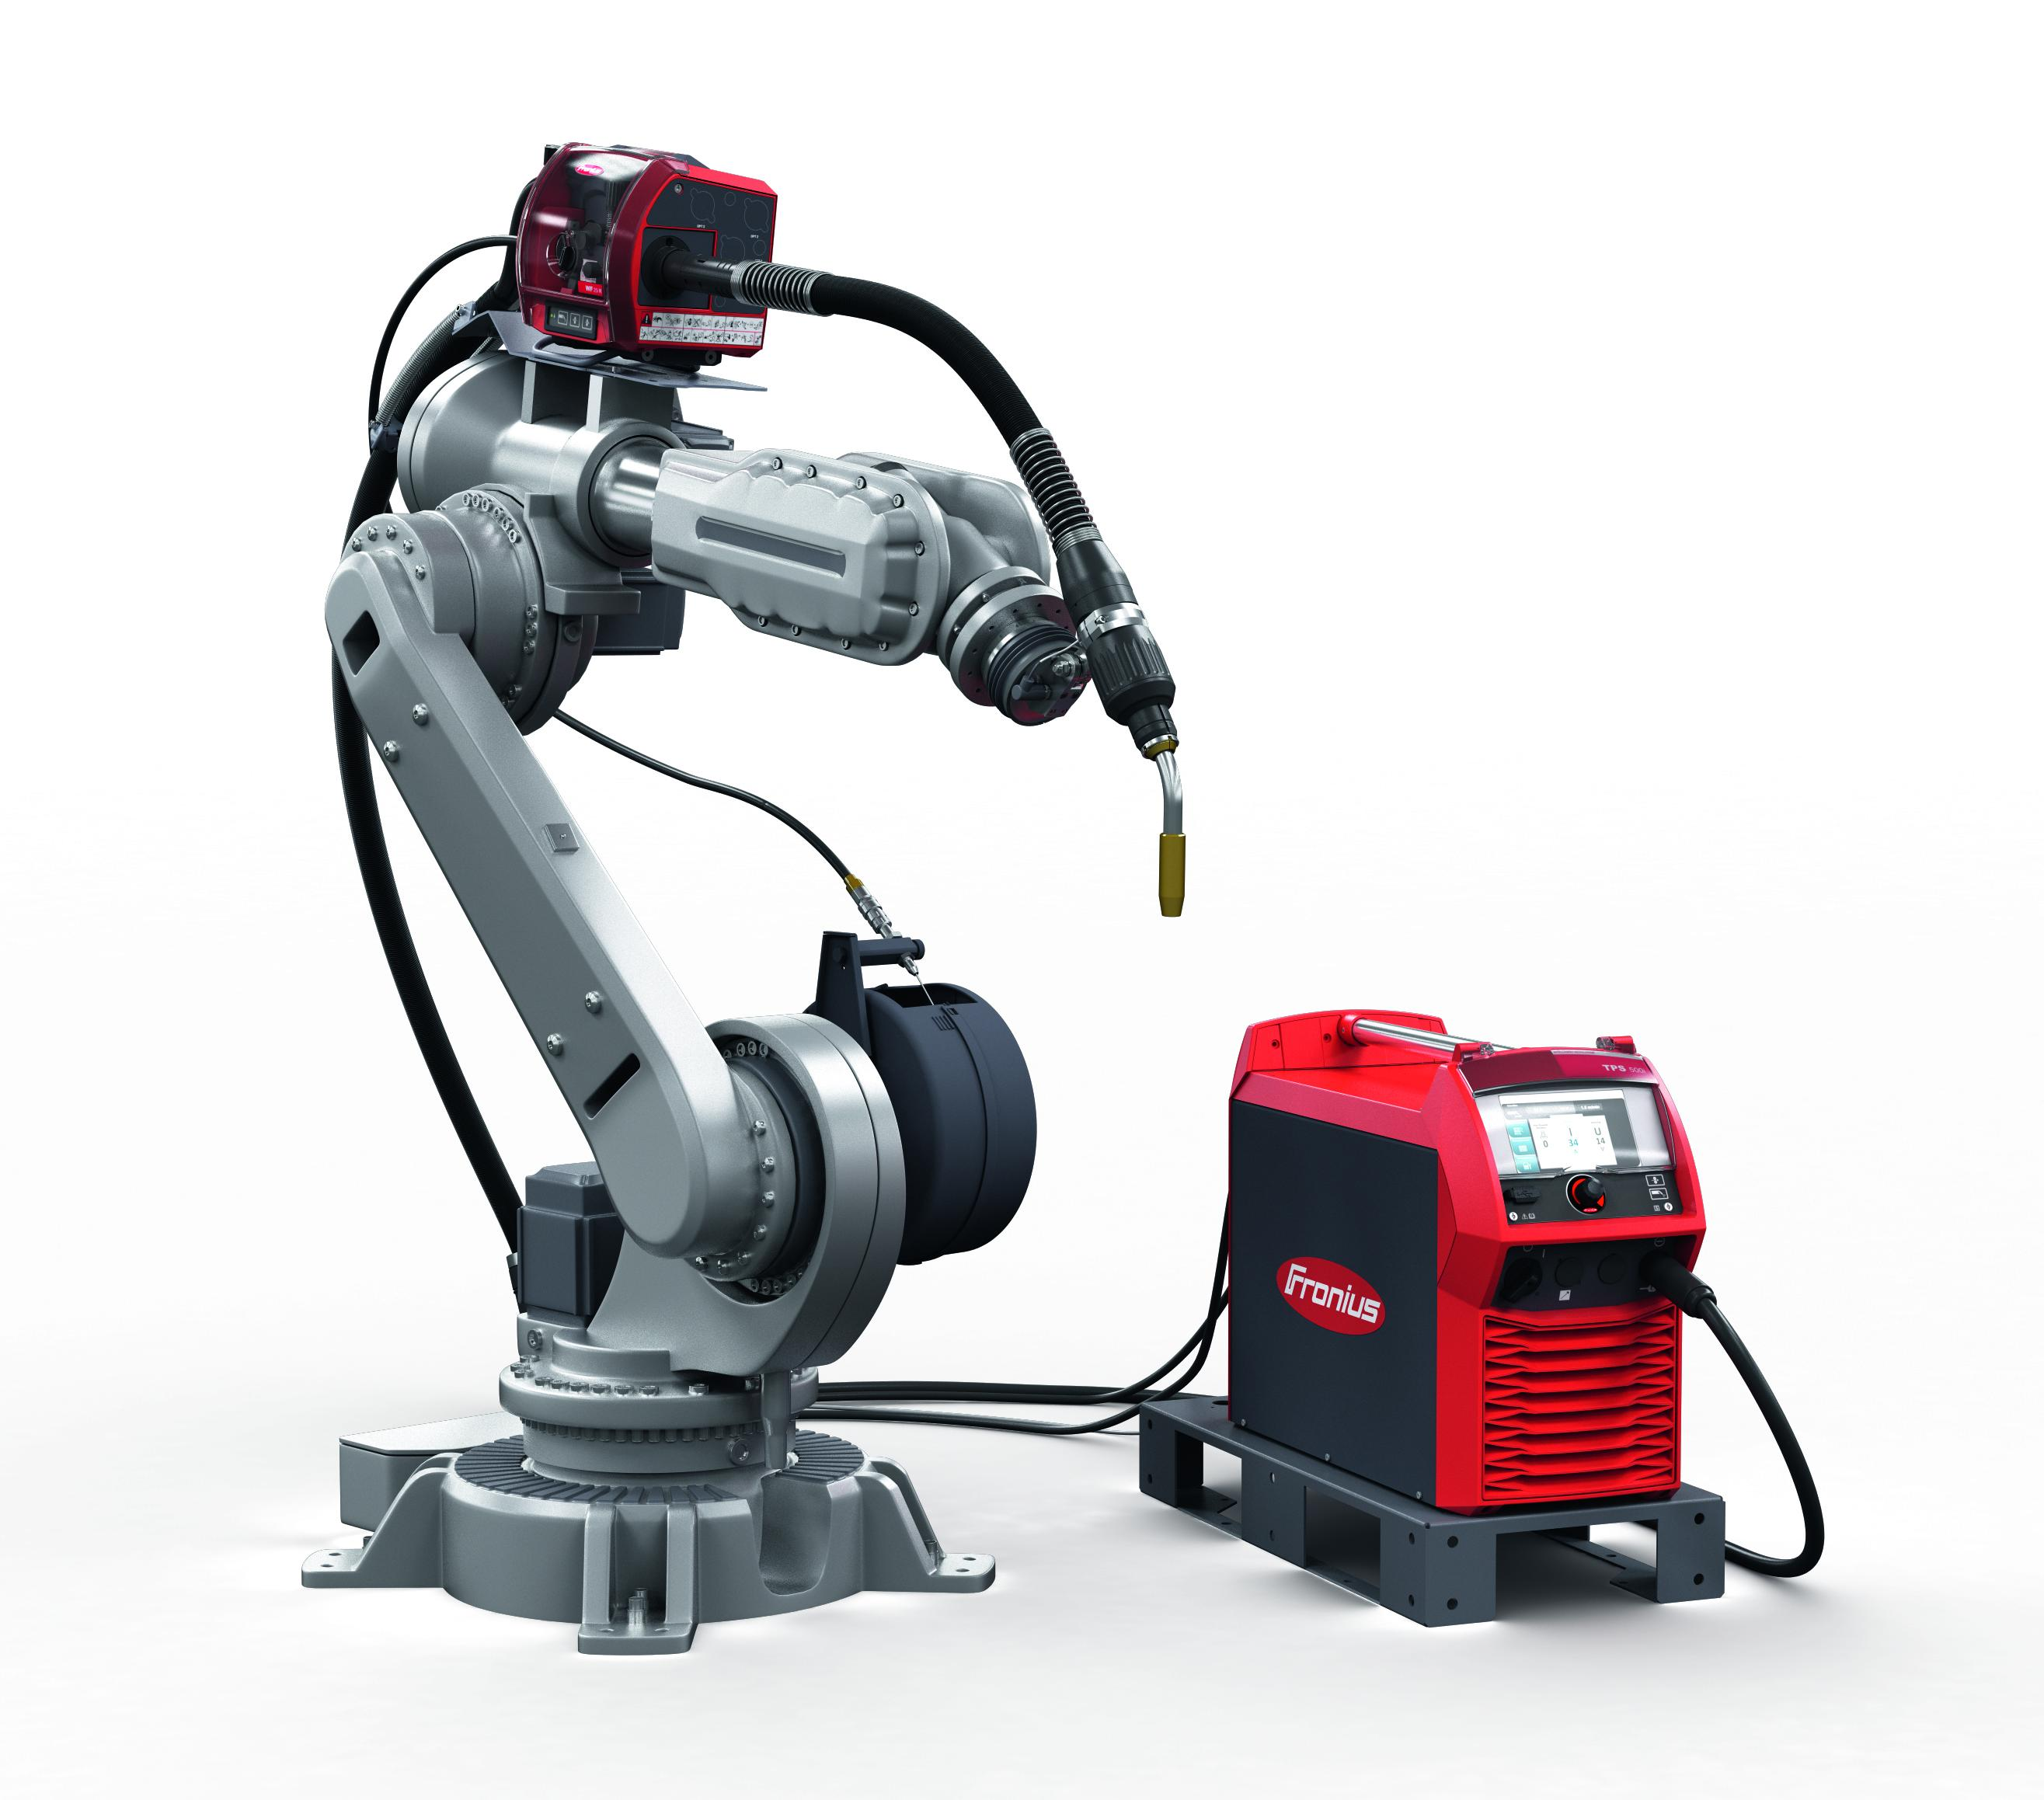 Fronius Launches Tps I Power Source Canadian Metalworking